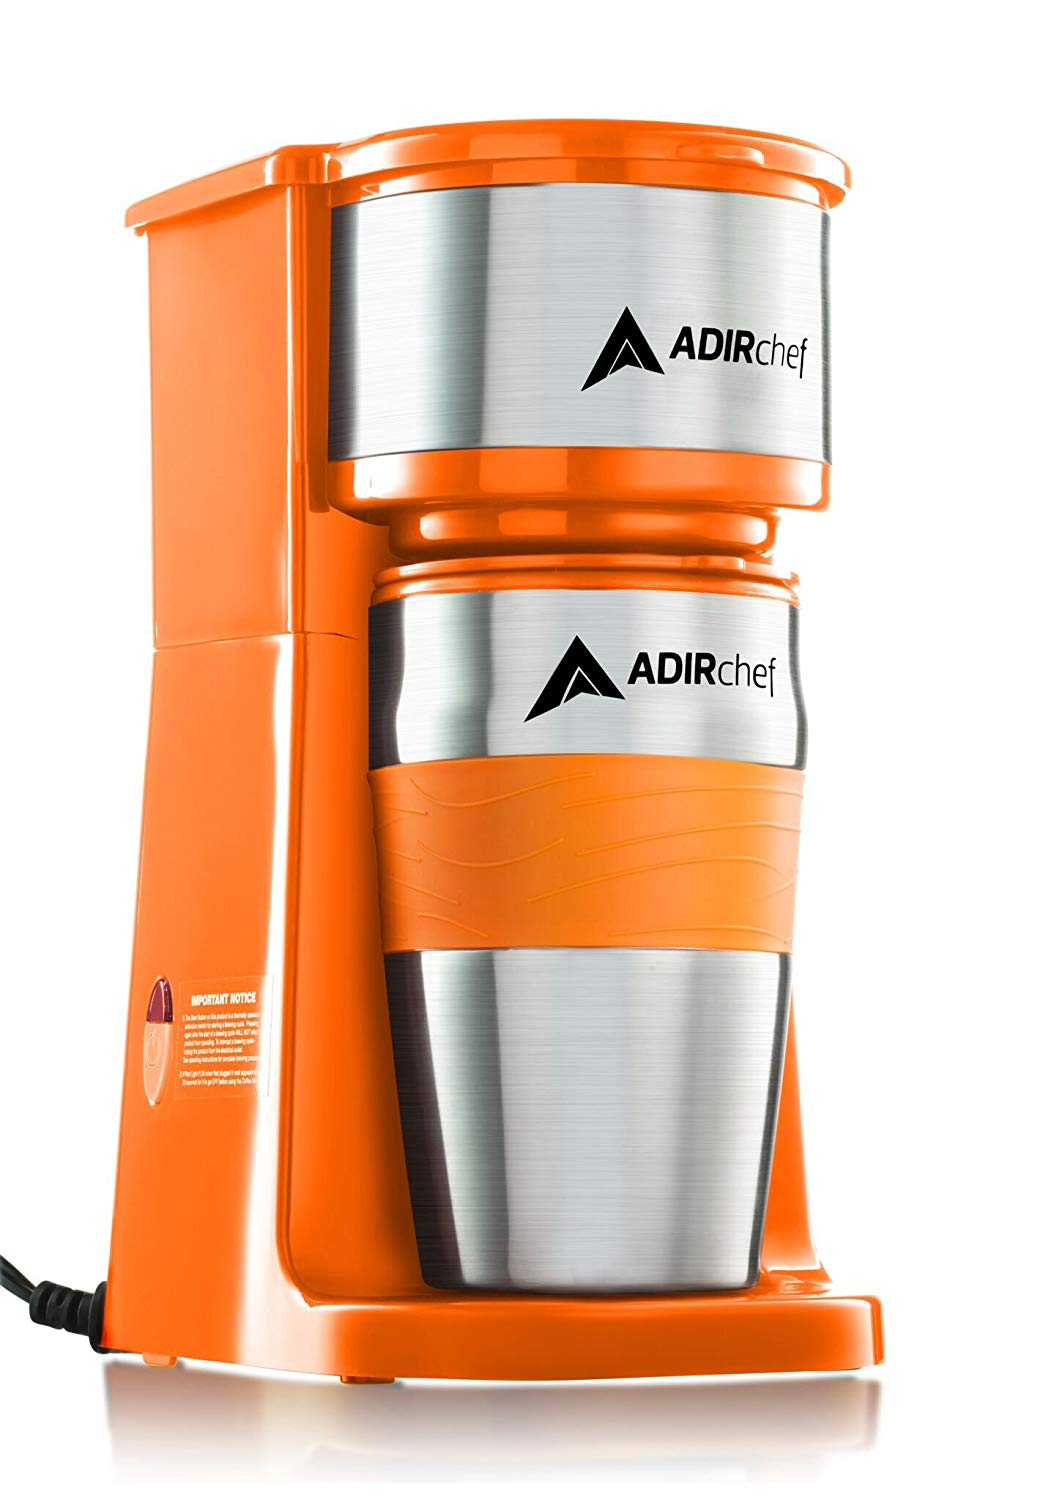 Adirchef-Coffee-Maker